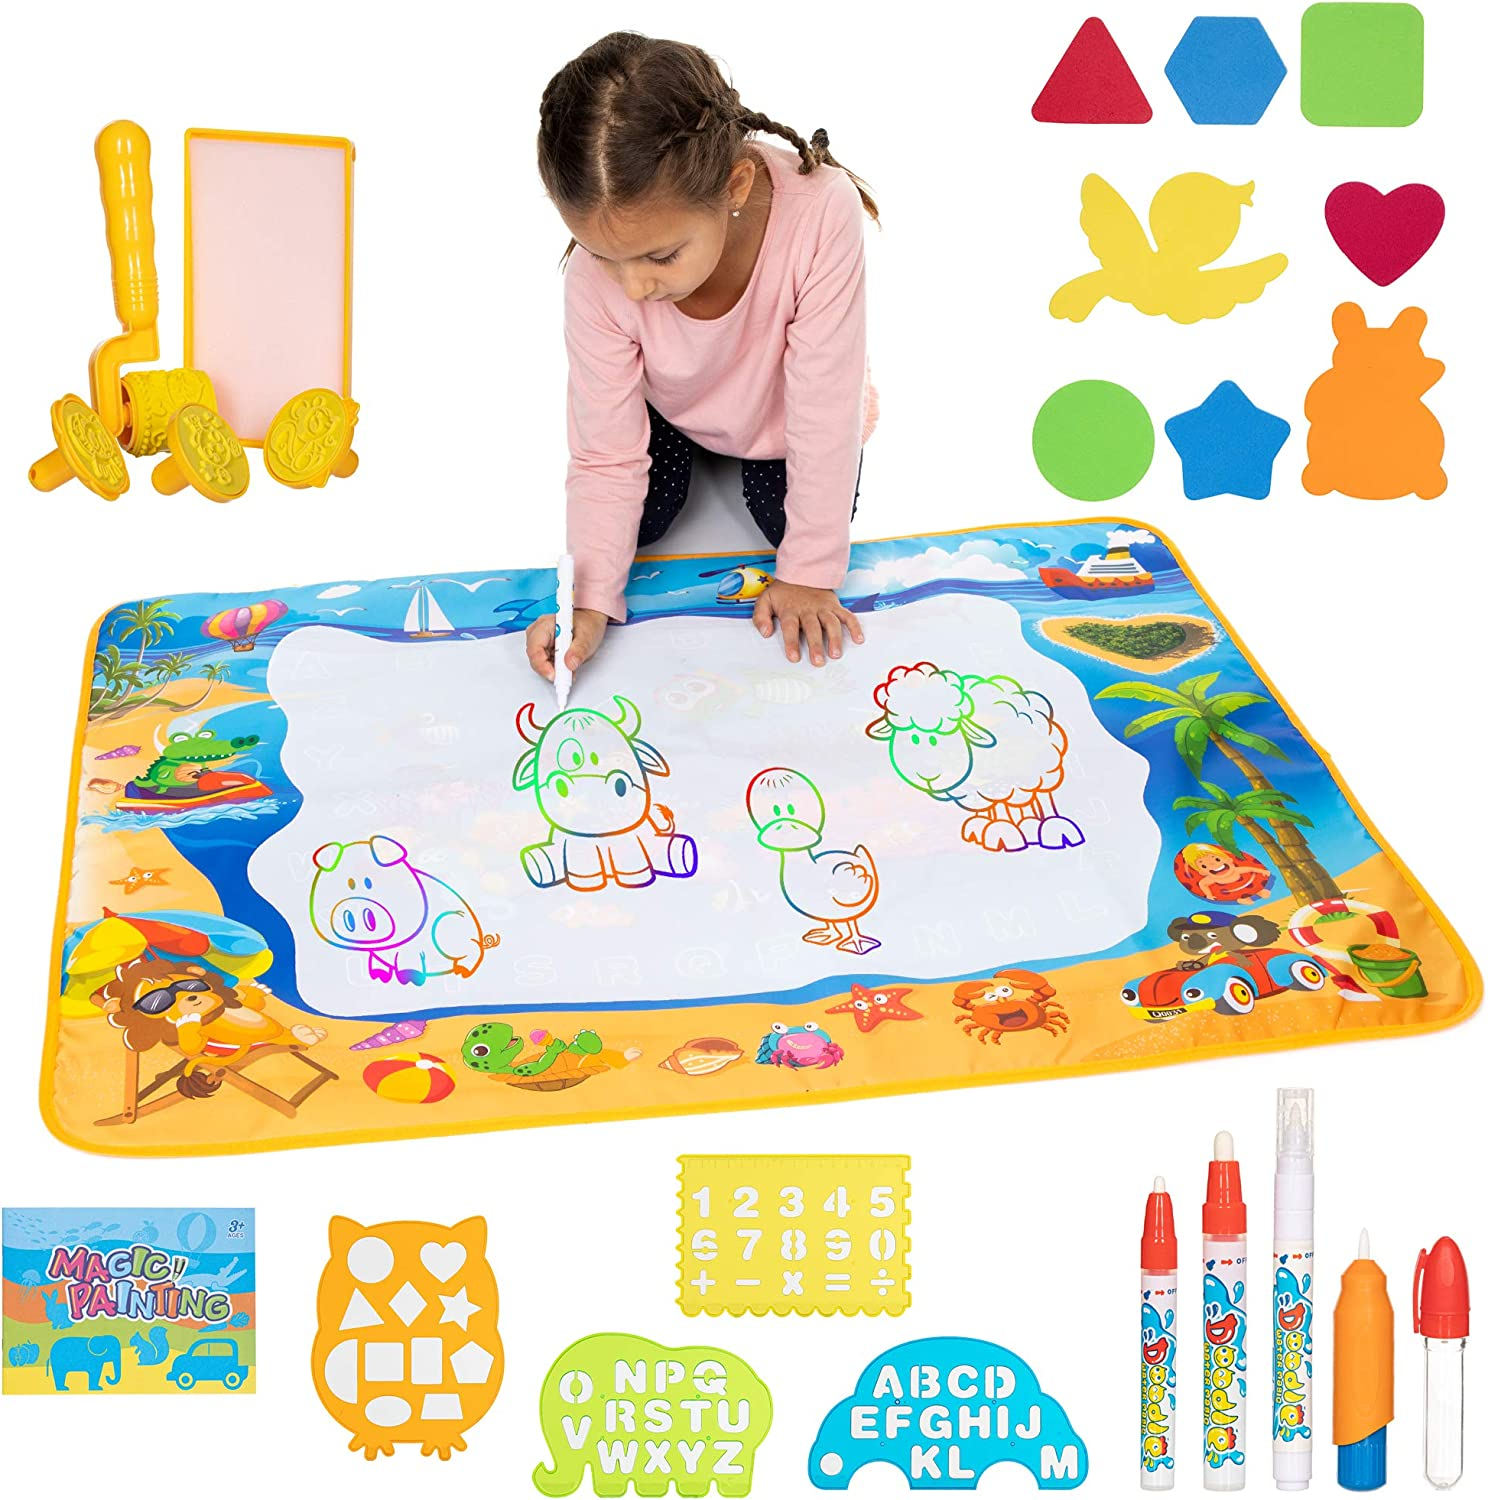 Toys Gem Water Drawing Mat Set with 4 Pens and Drawing Accessories 40 x 28 inch Large Aqua Magic Doodle Mat Educational Toys for Boys and Girls Gift for Ages 3 and Up